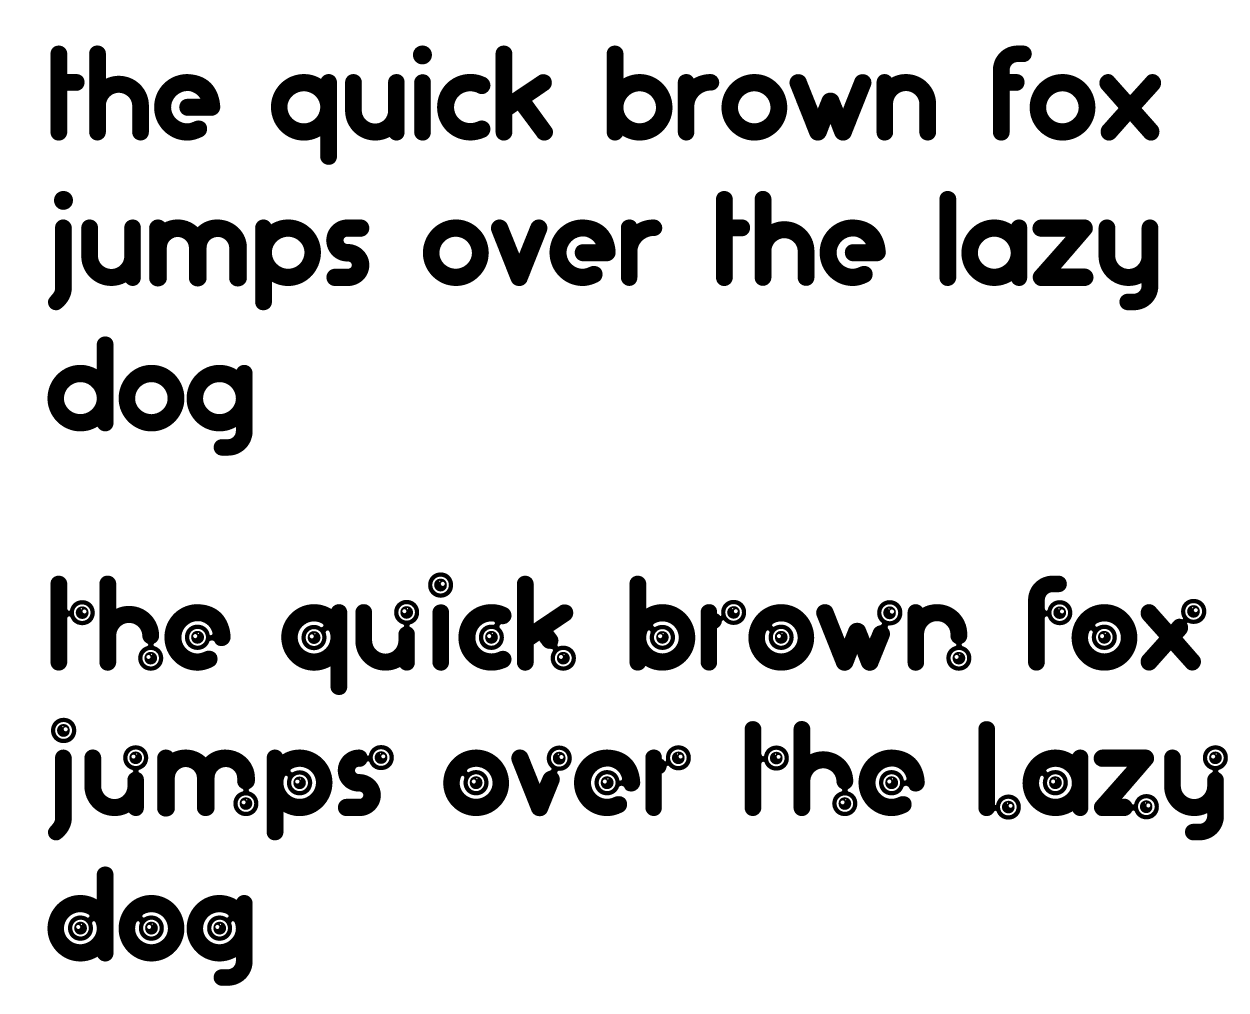 The quick brown fox jumps over the lazy dog, written in the Artificers typeface